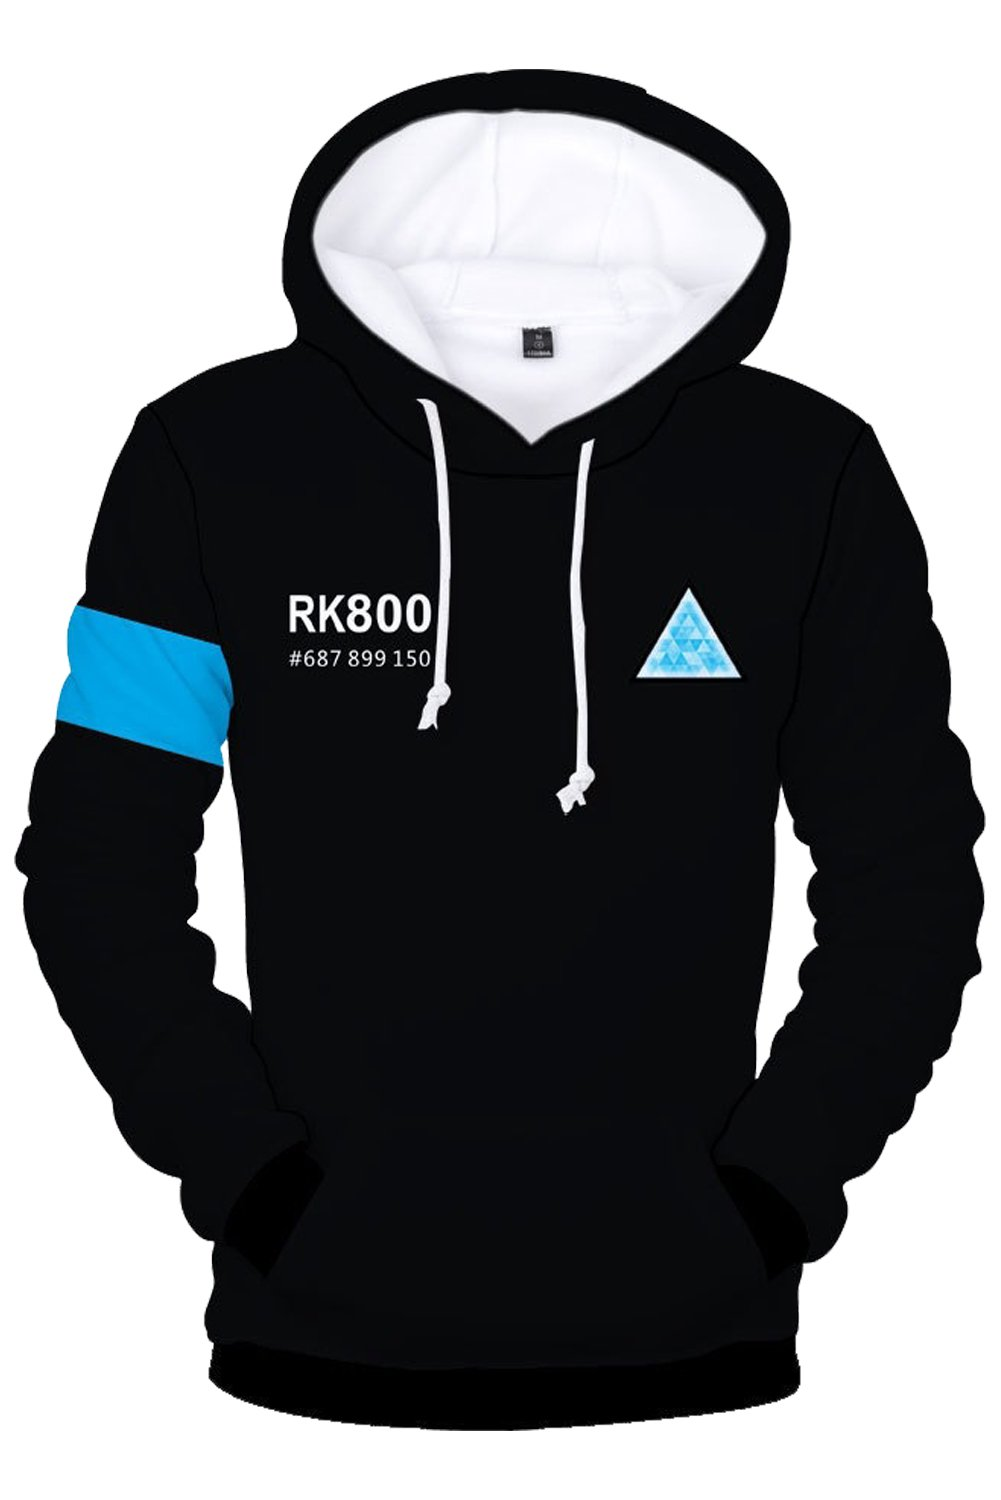 Game Cosplay Hoodie Hoodie Jacket 3D Printed Hooded Pullover Sweatshirt